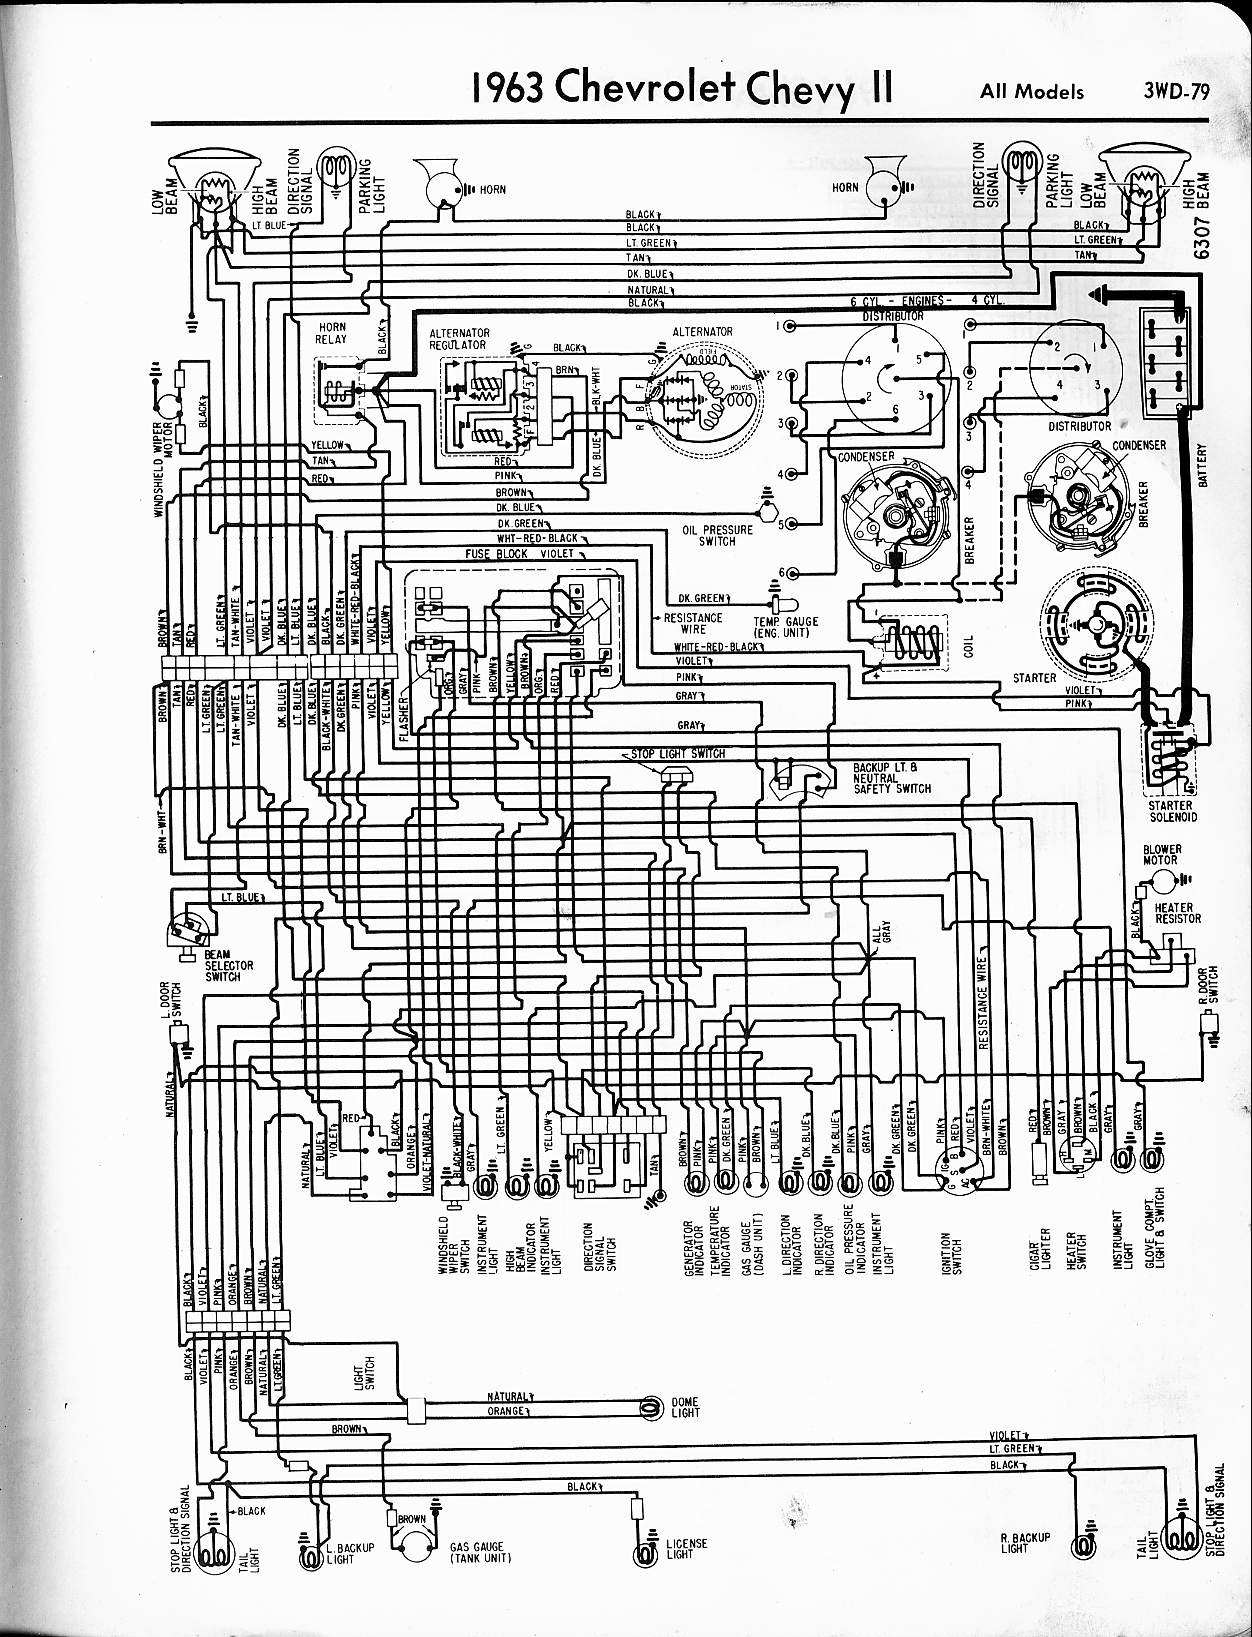 MWireChev63_3WD 079 57 65 chevy wiring diagrams 3 Wire Headlight Wiring Diagram at edmiracle.co